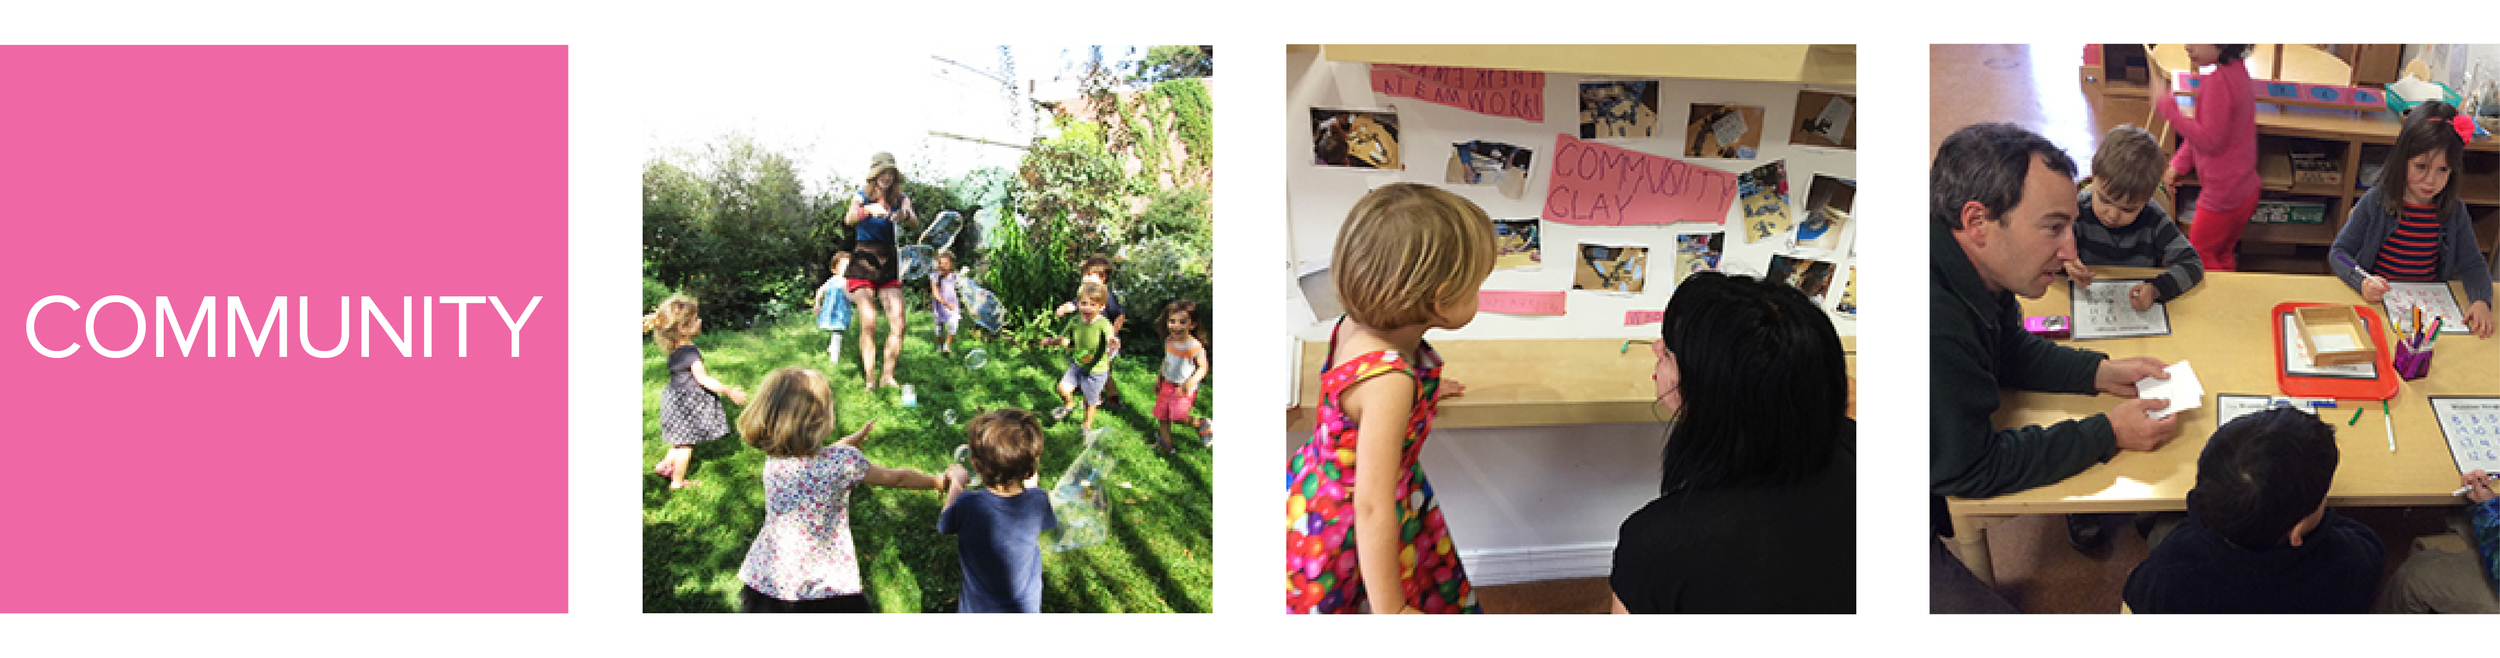 RED HOOK PLAYGROUP: OUR COMMUNITY